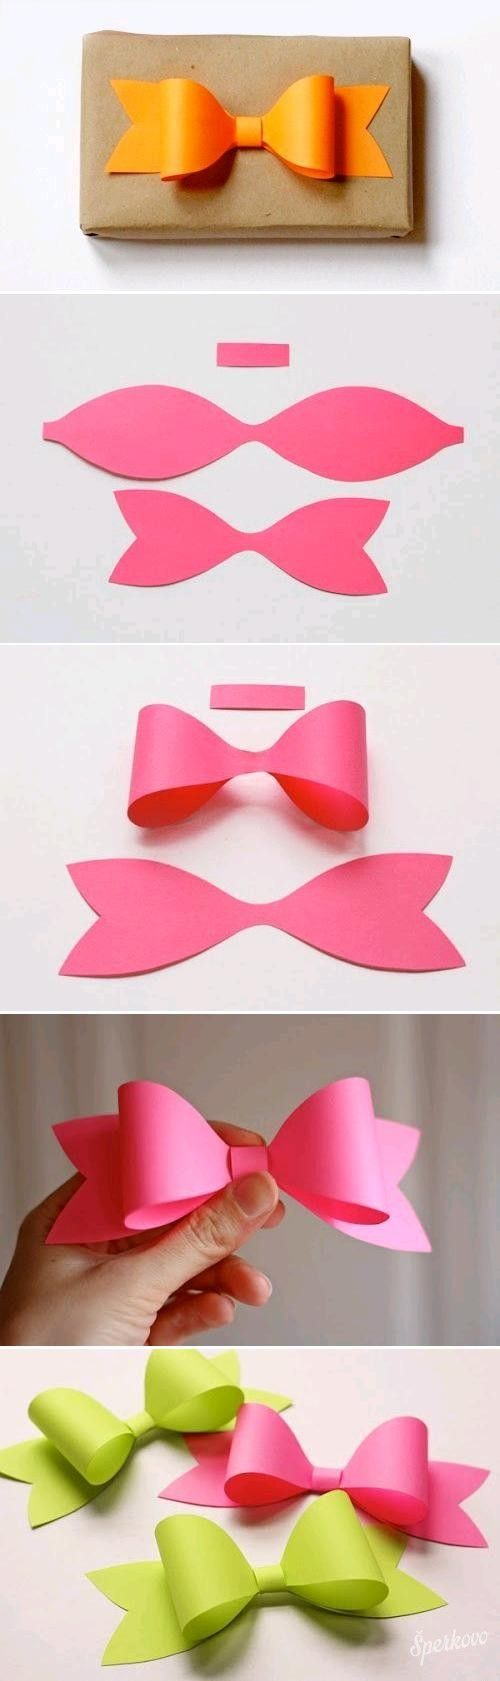 DIY - its paper but im sure it would work with ribbon! I LUV BOWS!